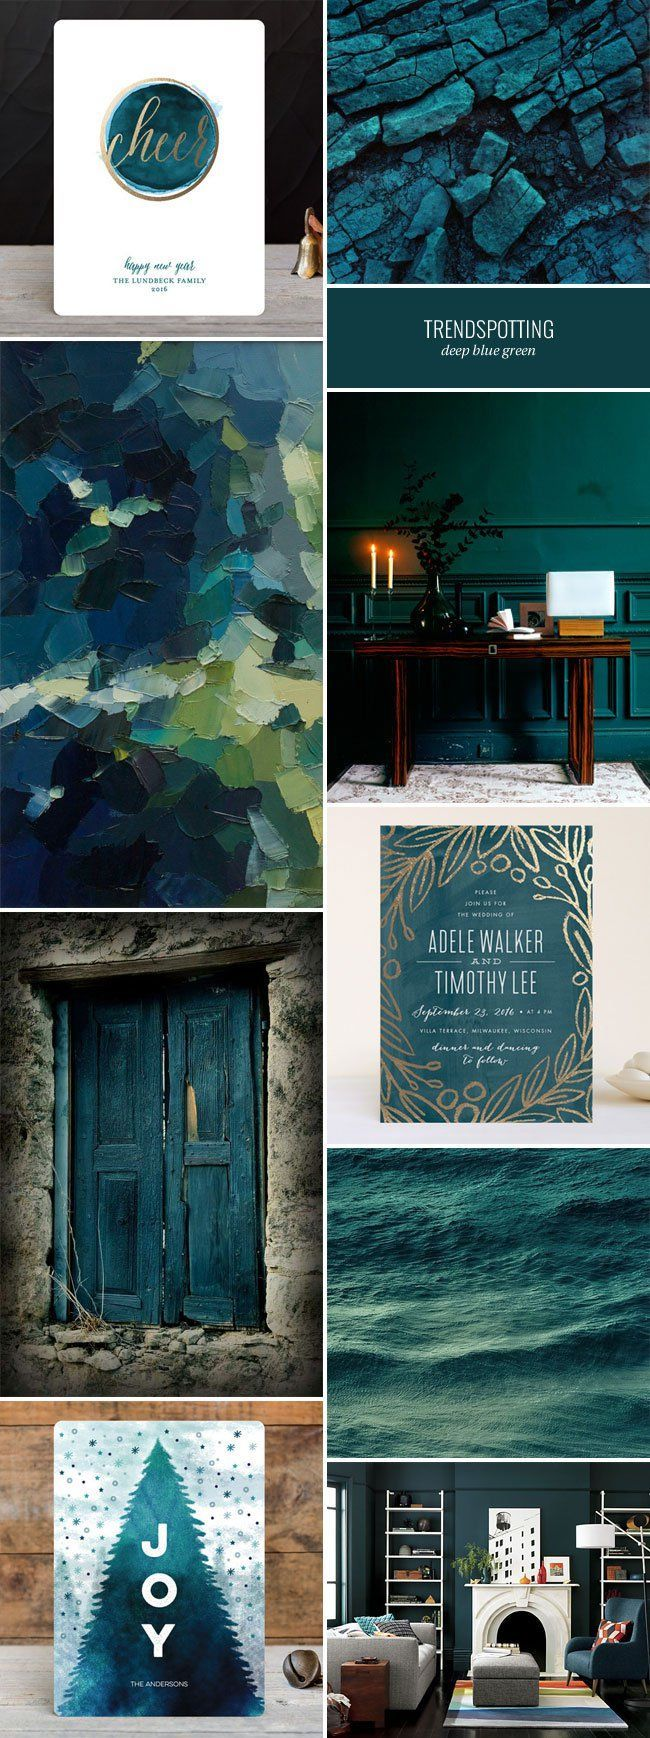 Color Trends : Deep Blue Green. Love the look? Don't #DIY. Klarvasser can #DoItForYou. Call/text Rob at 414-975-1327 or email rclrh2o@gmail.com for a free estimate today.